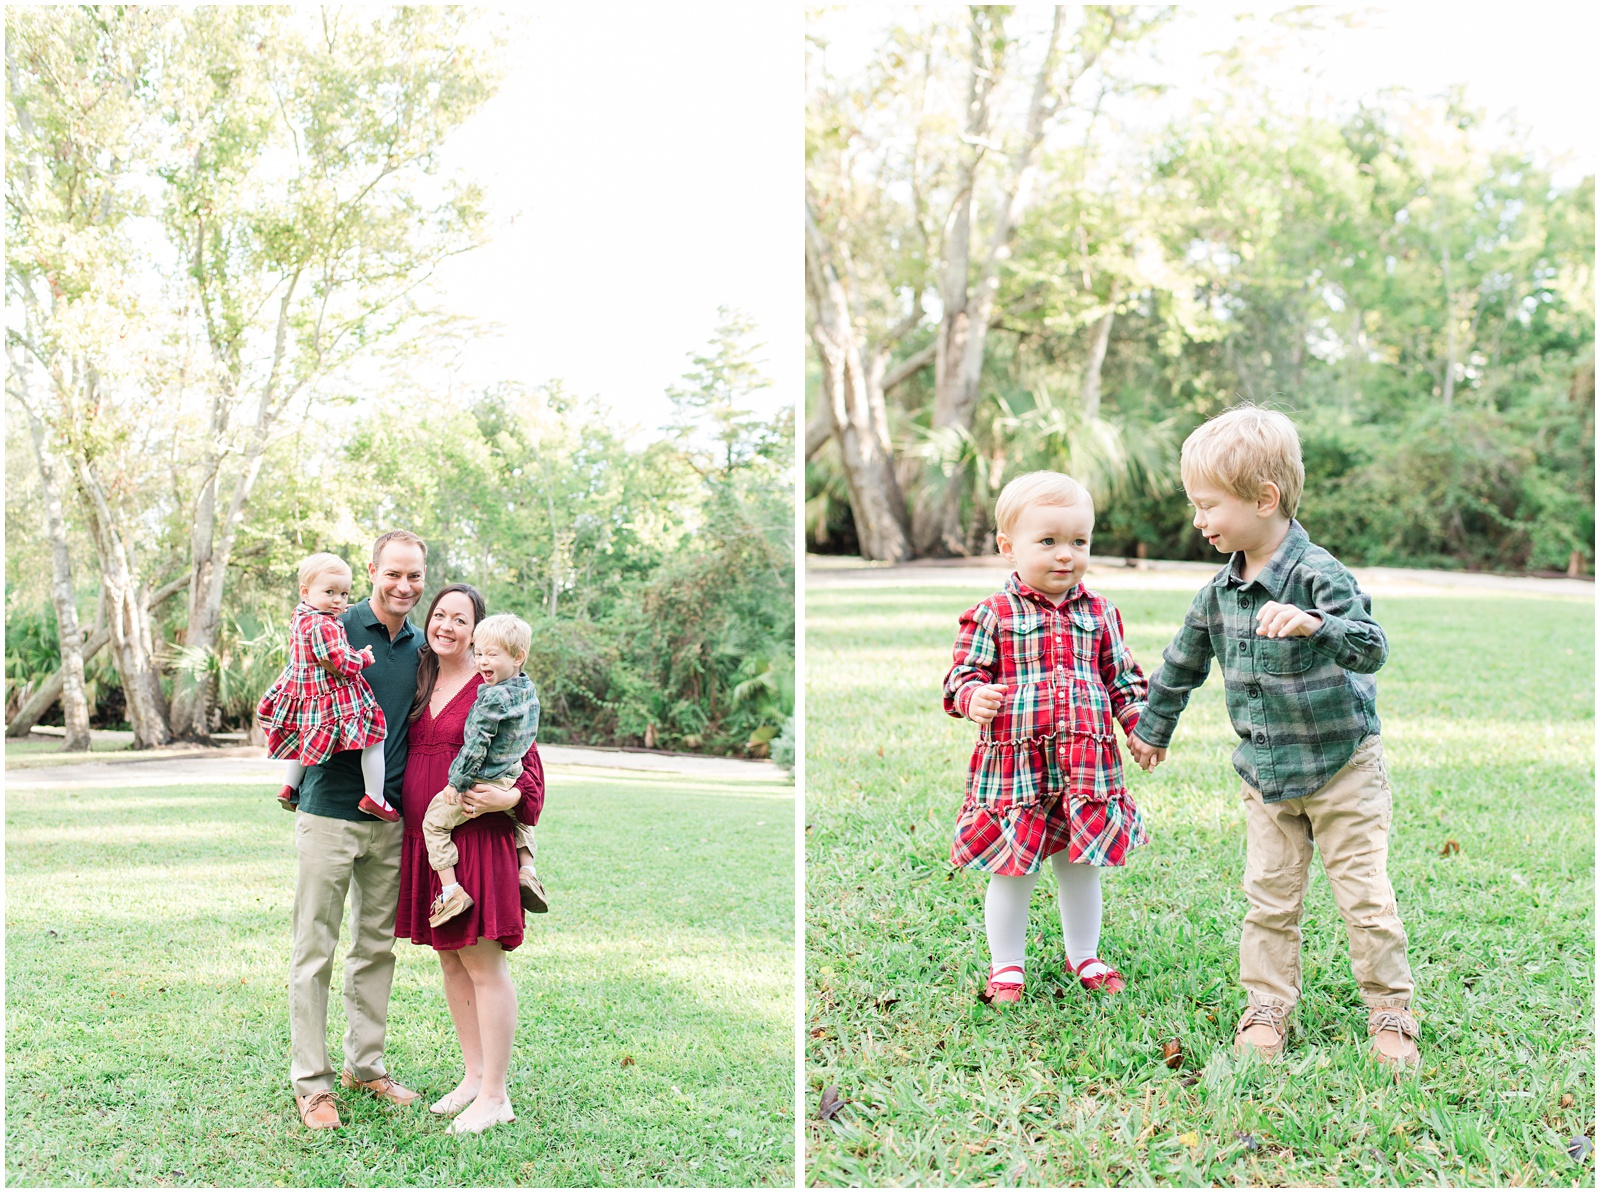 Christmas_Mini Sessions_Holidays_Howell Park_Jacksonville_Florida_36.jpg